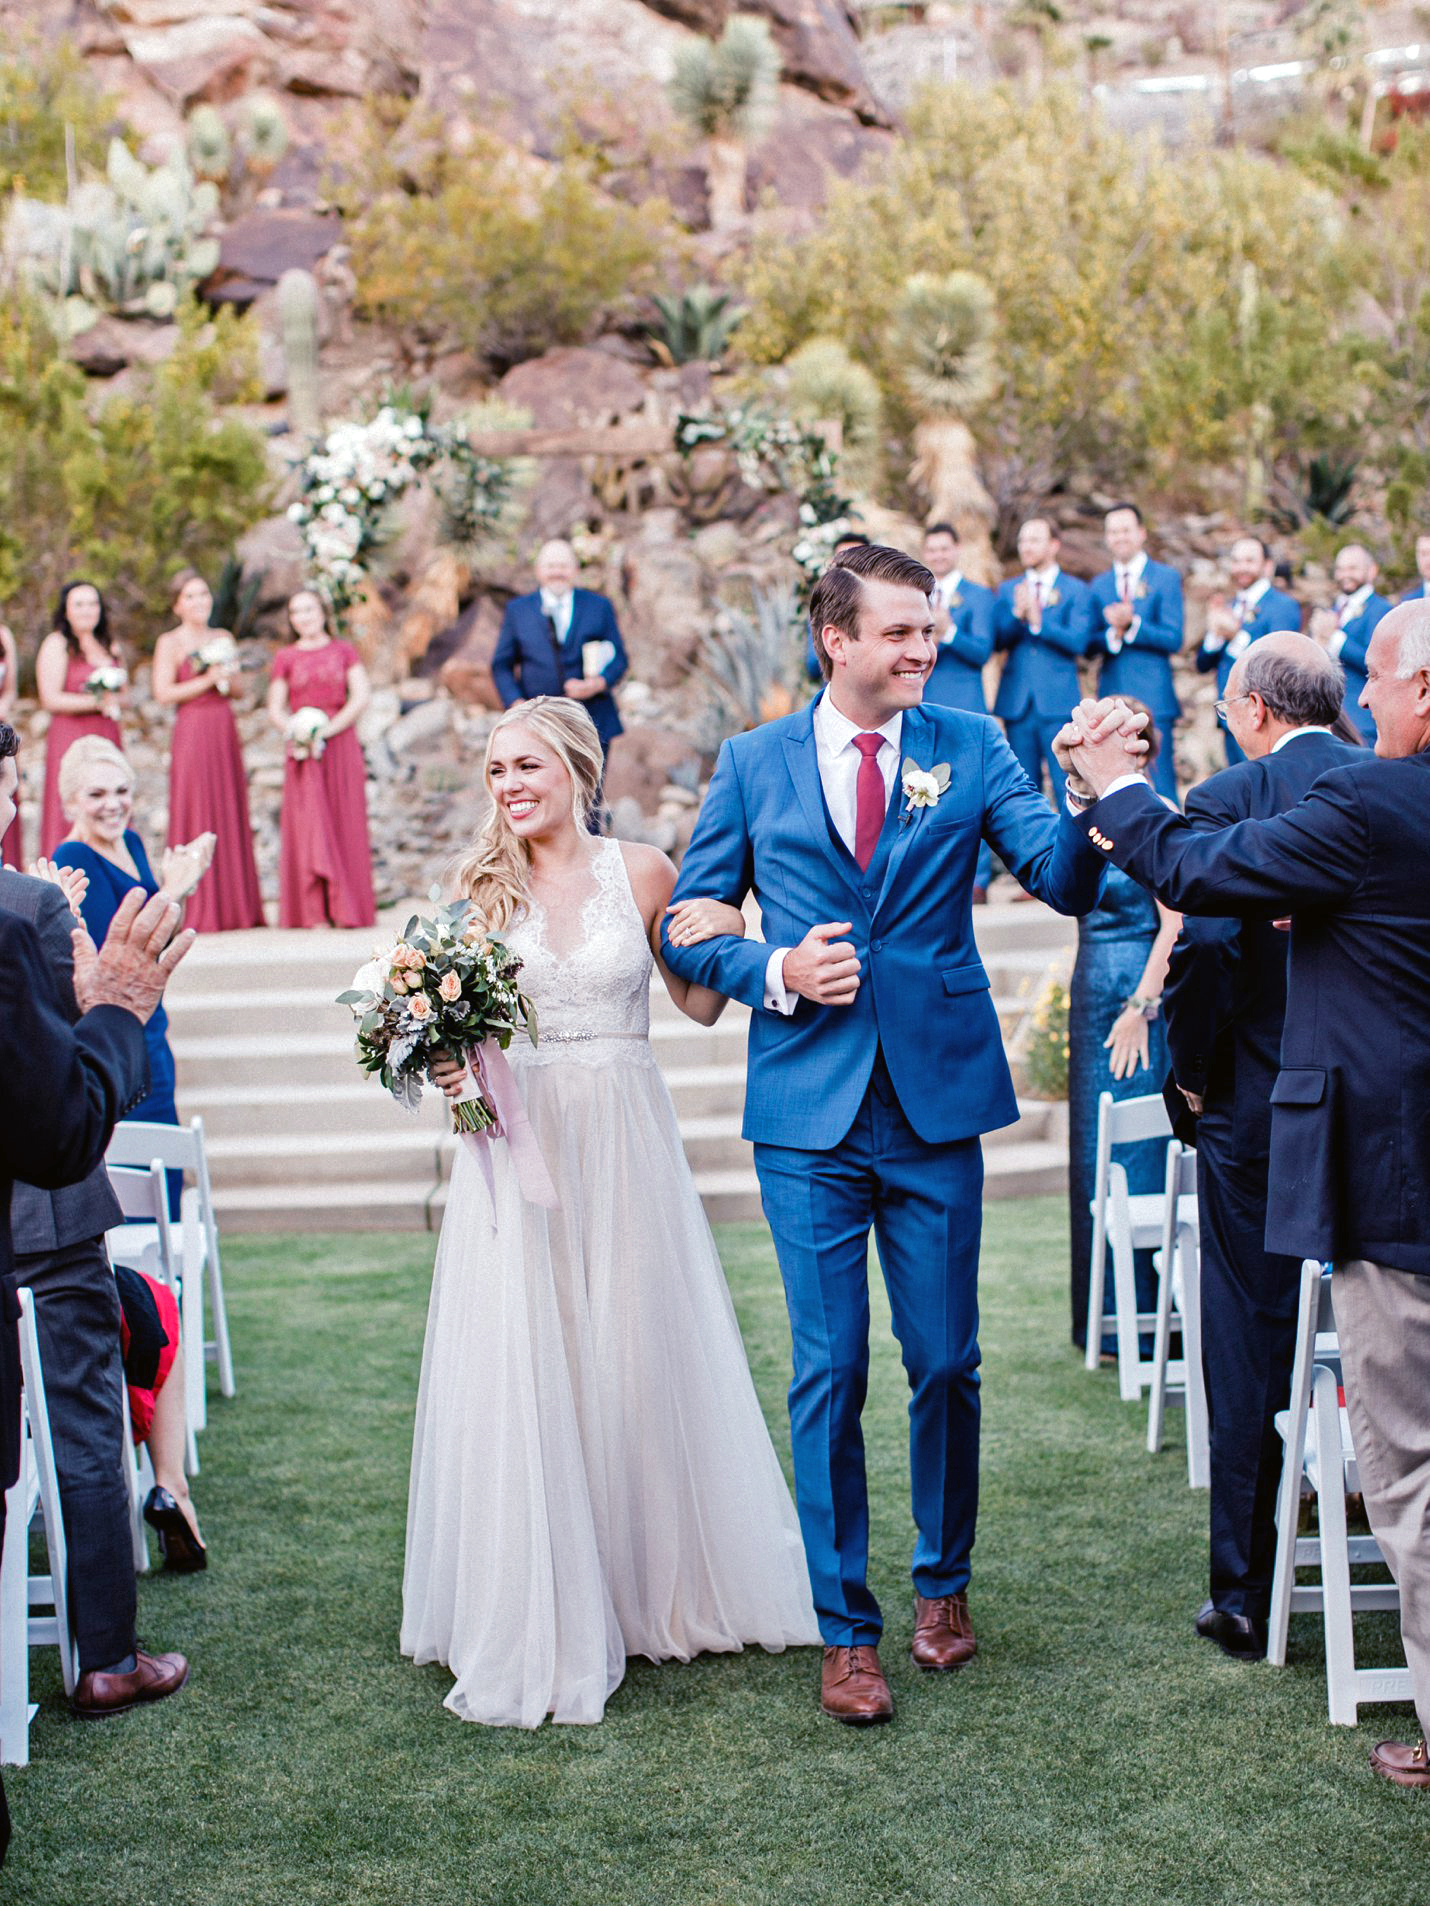 PalmSpringsWeddingPhotographer_RachelSolomonPhotography_Colony29Wedding-38.jpg